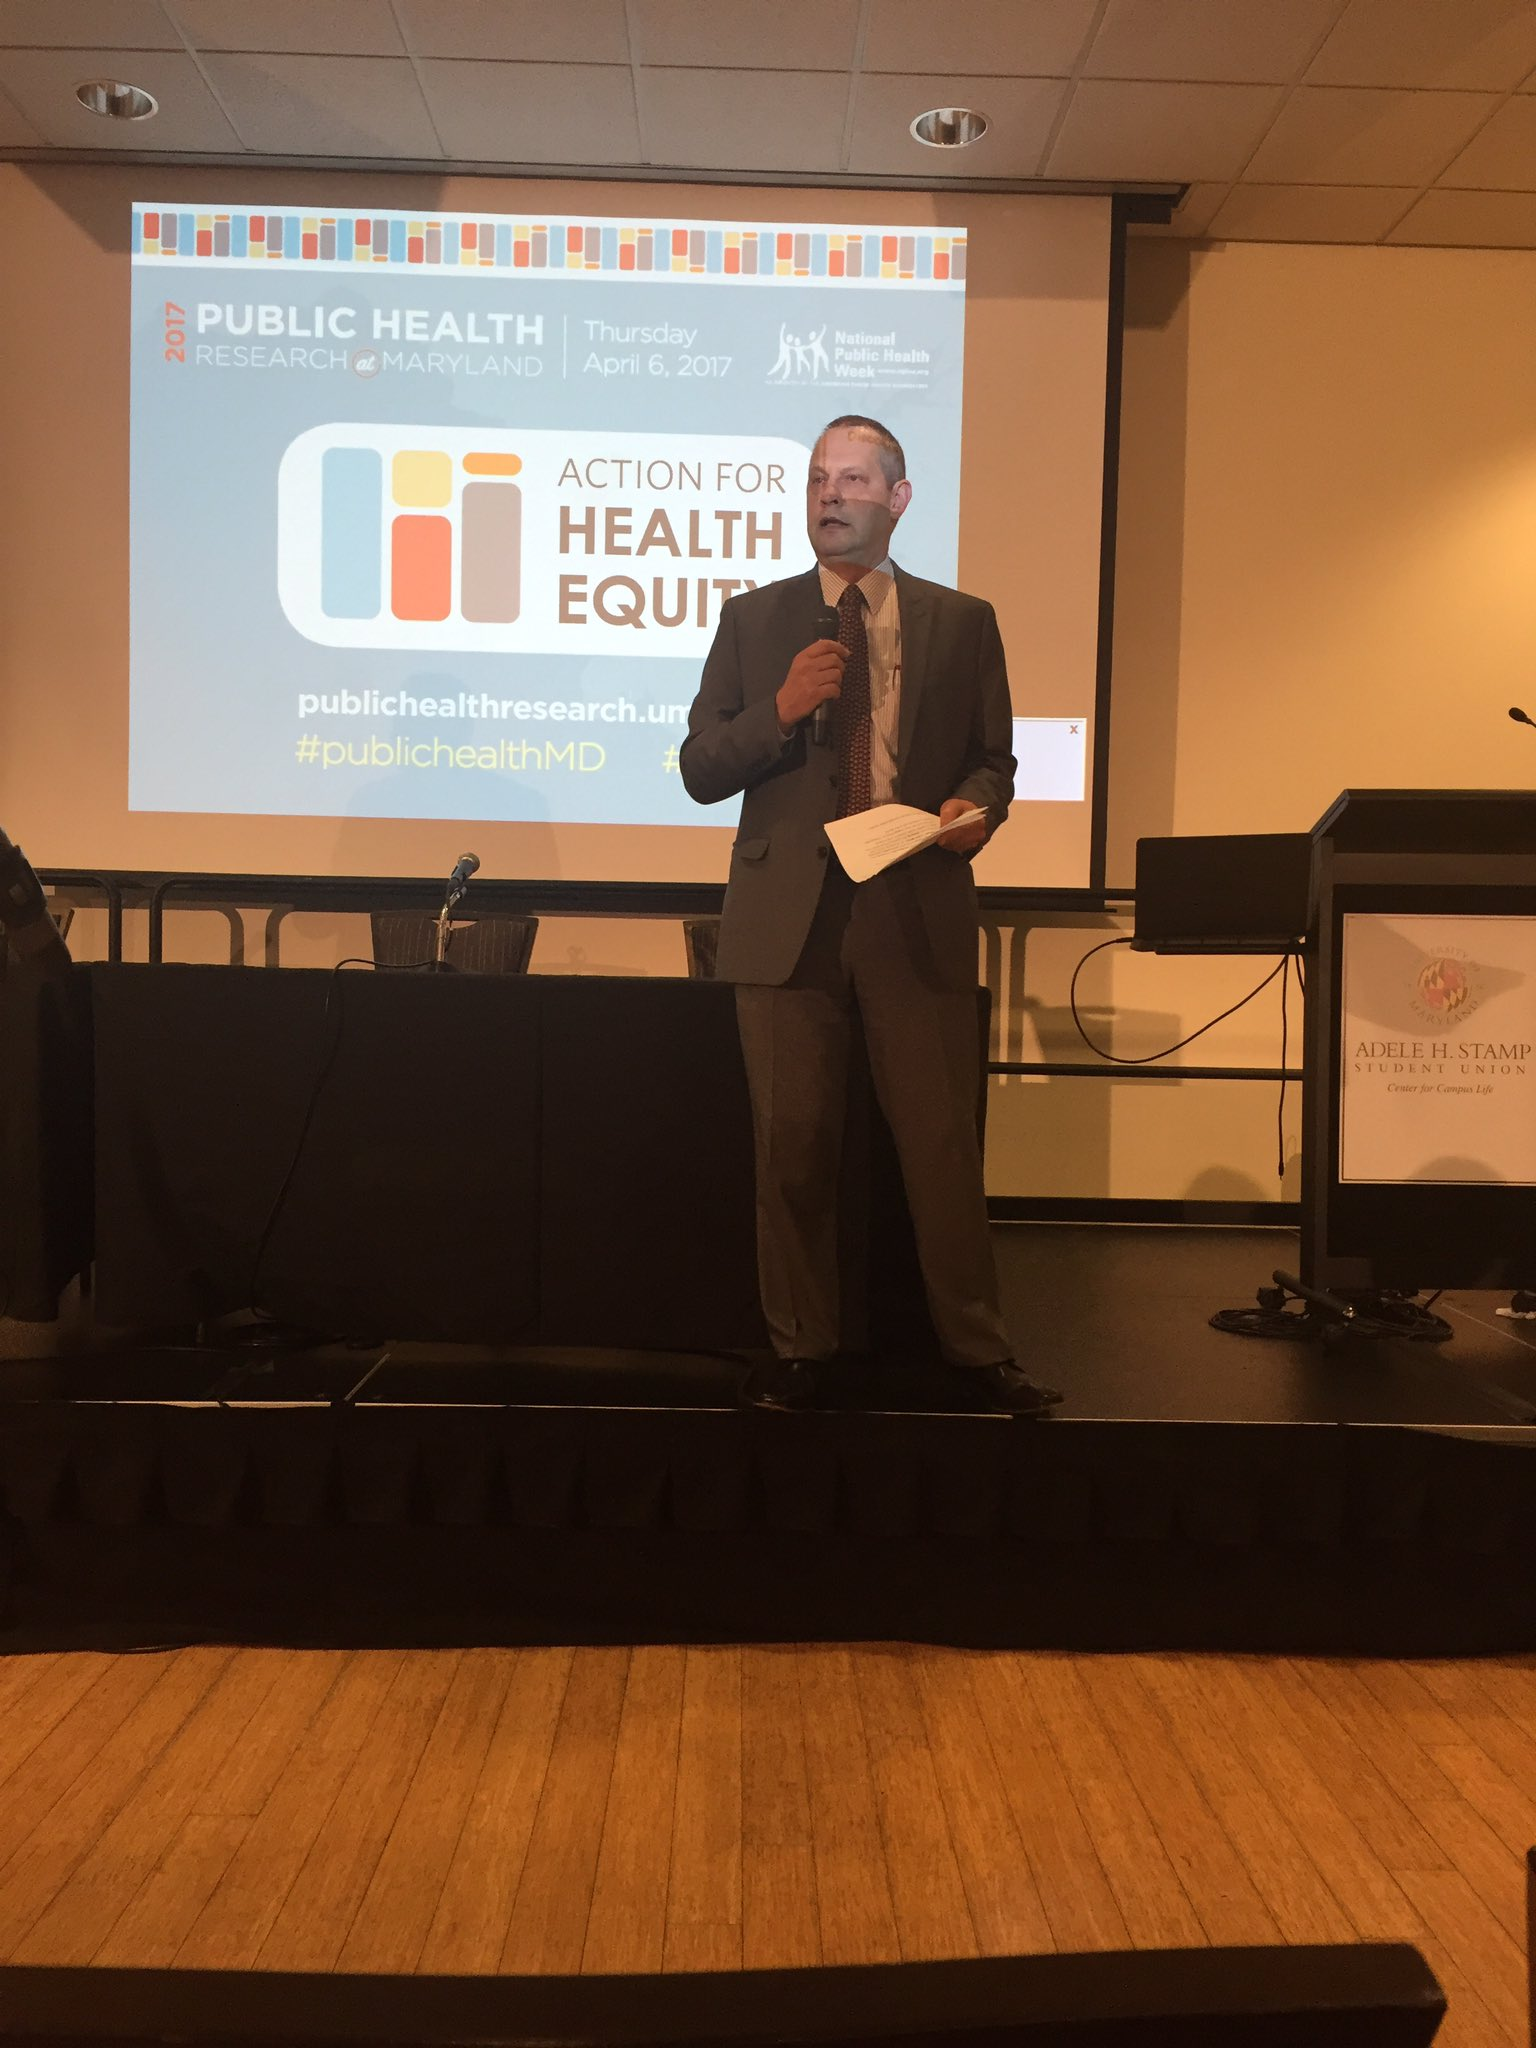 The Dean & my own public health hero, Dr. Boris Lushniak, who lives humanity & compassion in the fight for Health Equity #publichealthMD https://t.co/EB5nA3XlwZ